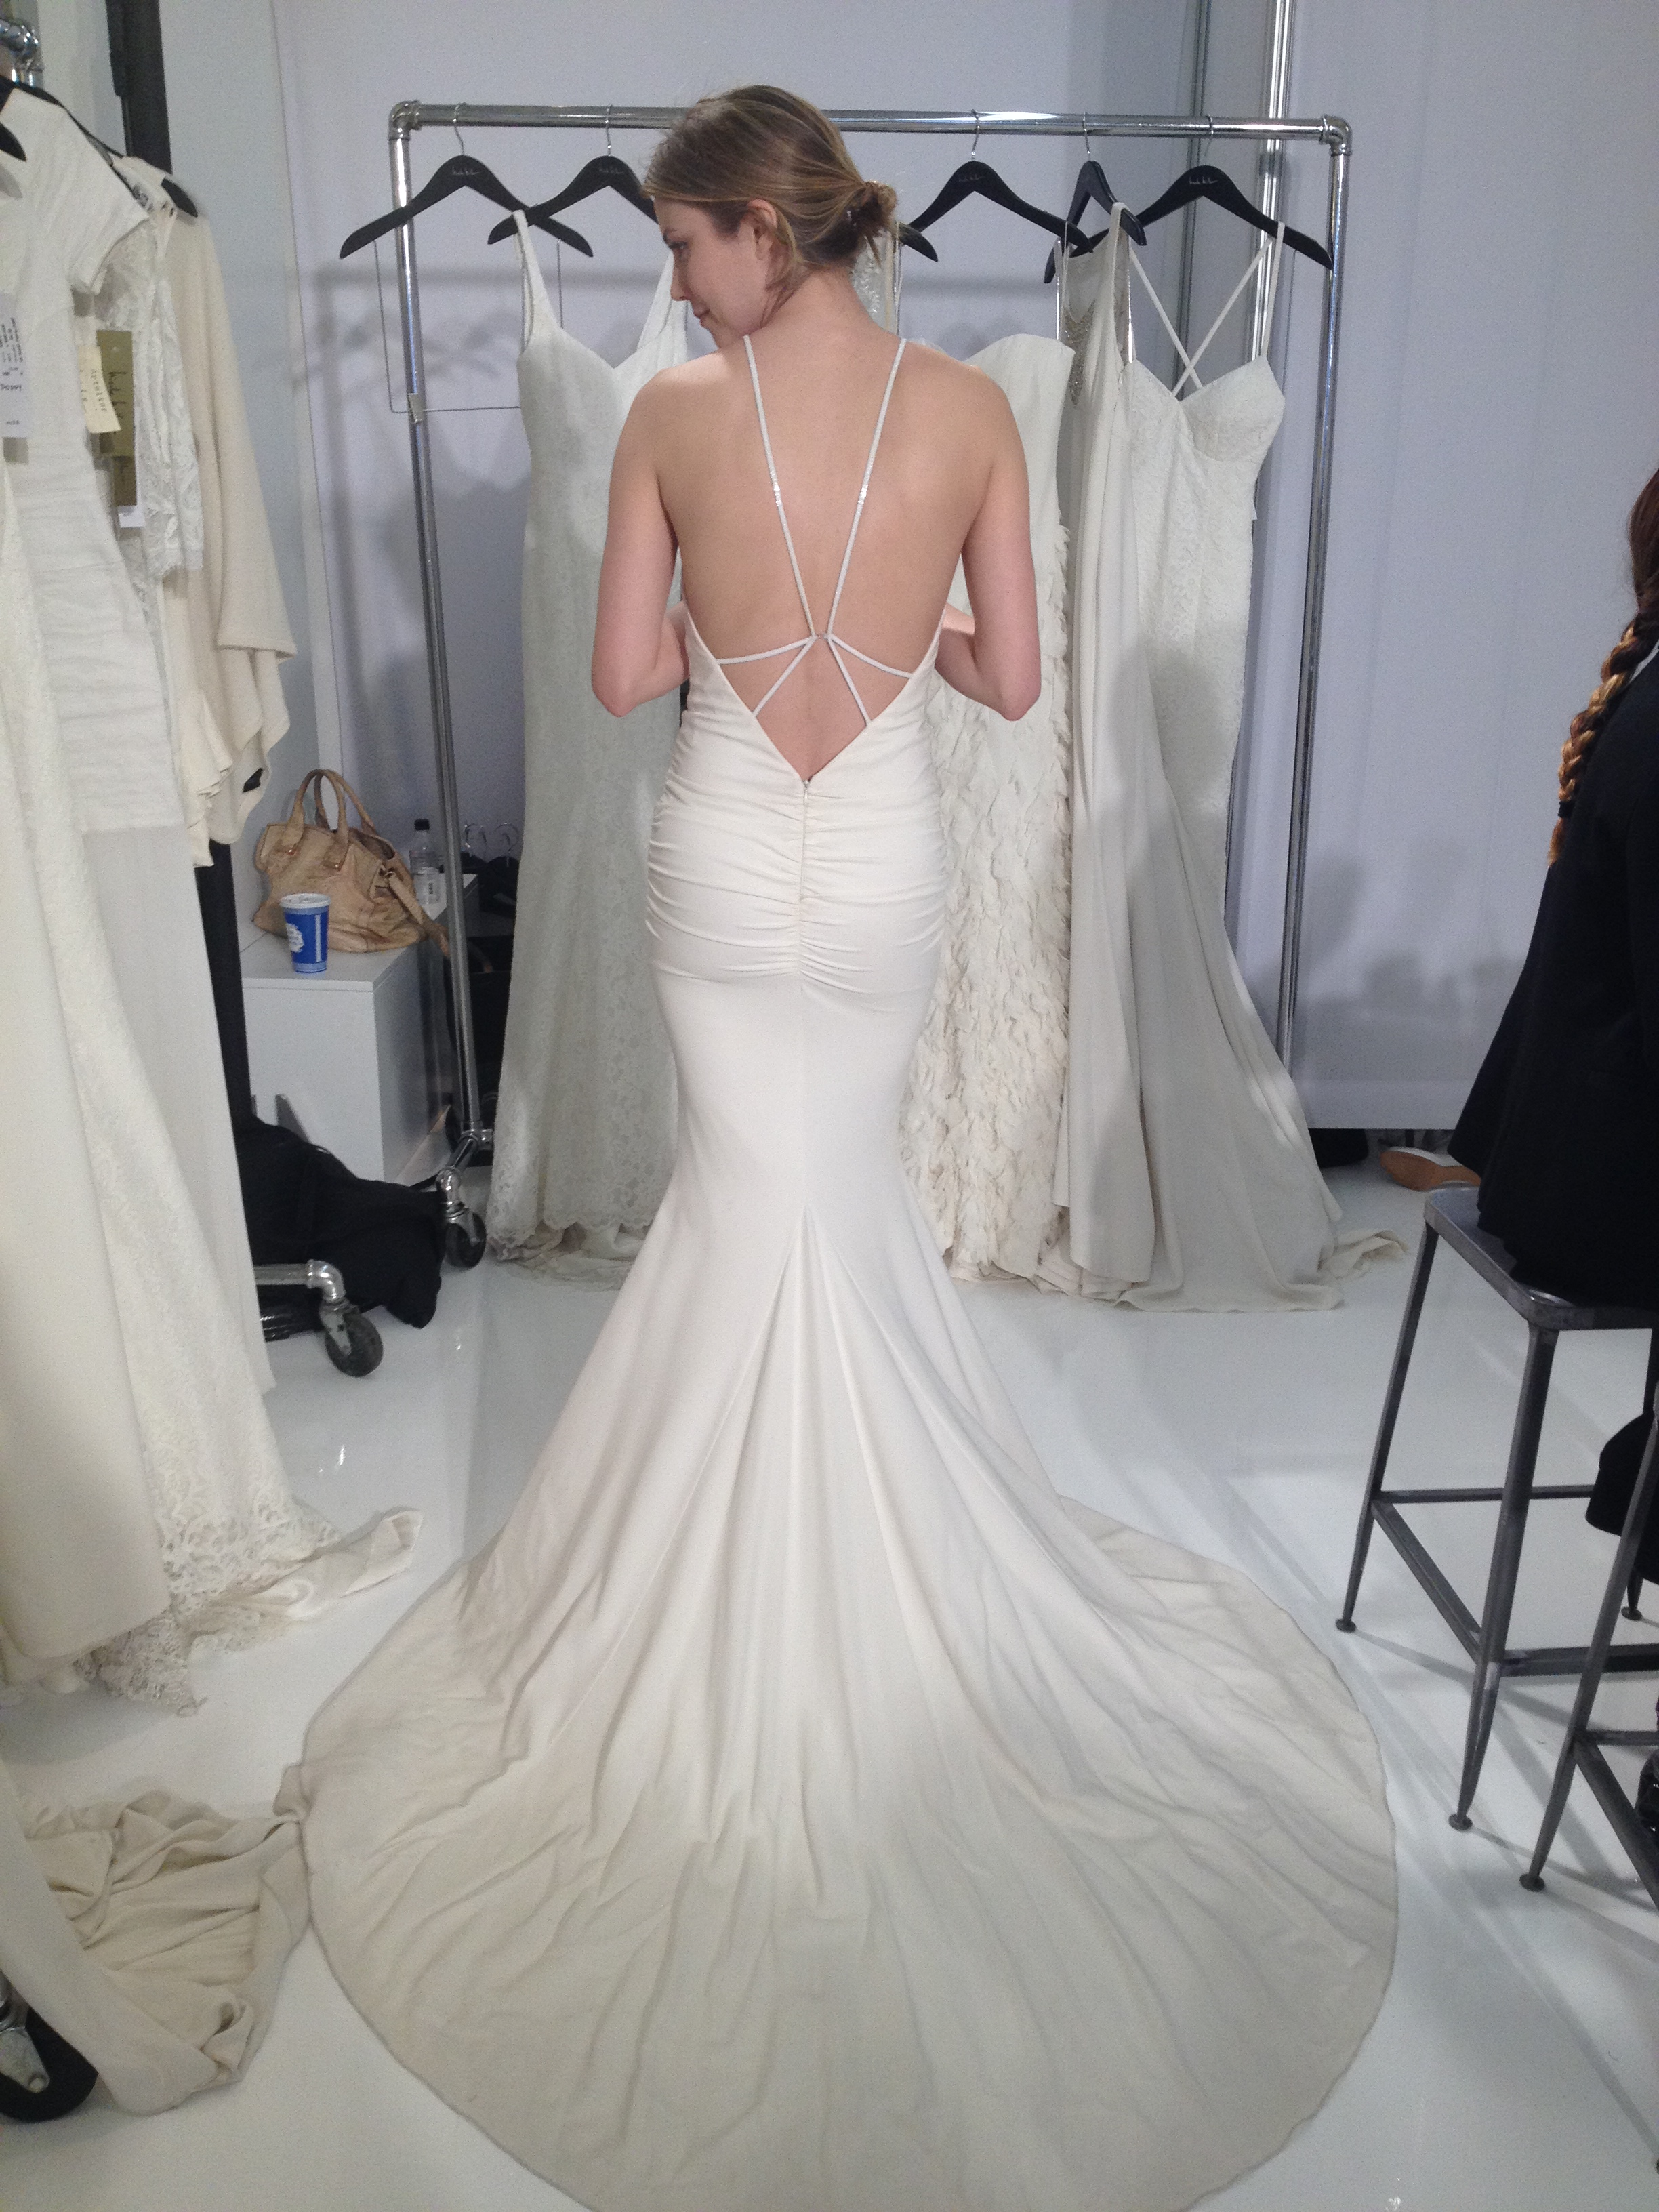 nicole miller bridal at nyc bridal week nicole miller wedding dresses What you ll see from her Fall Bridal collection new plays on low back wedding dresses some incredible work with illusion neck and backlines